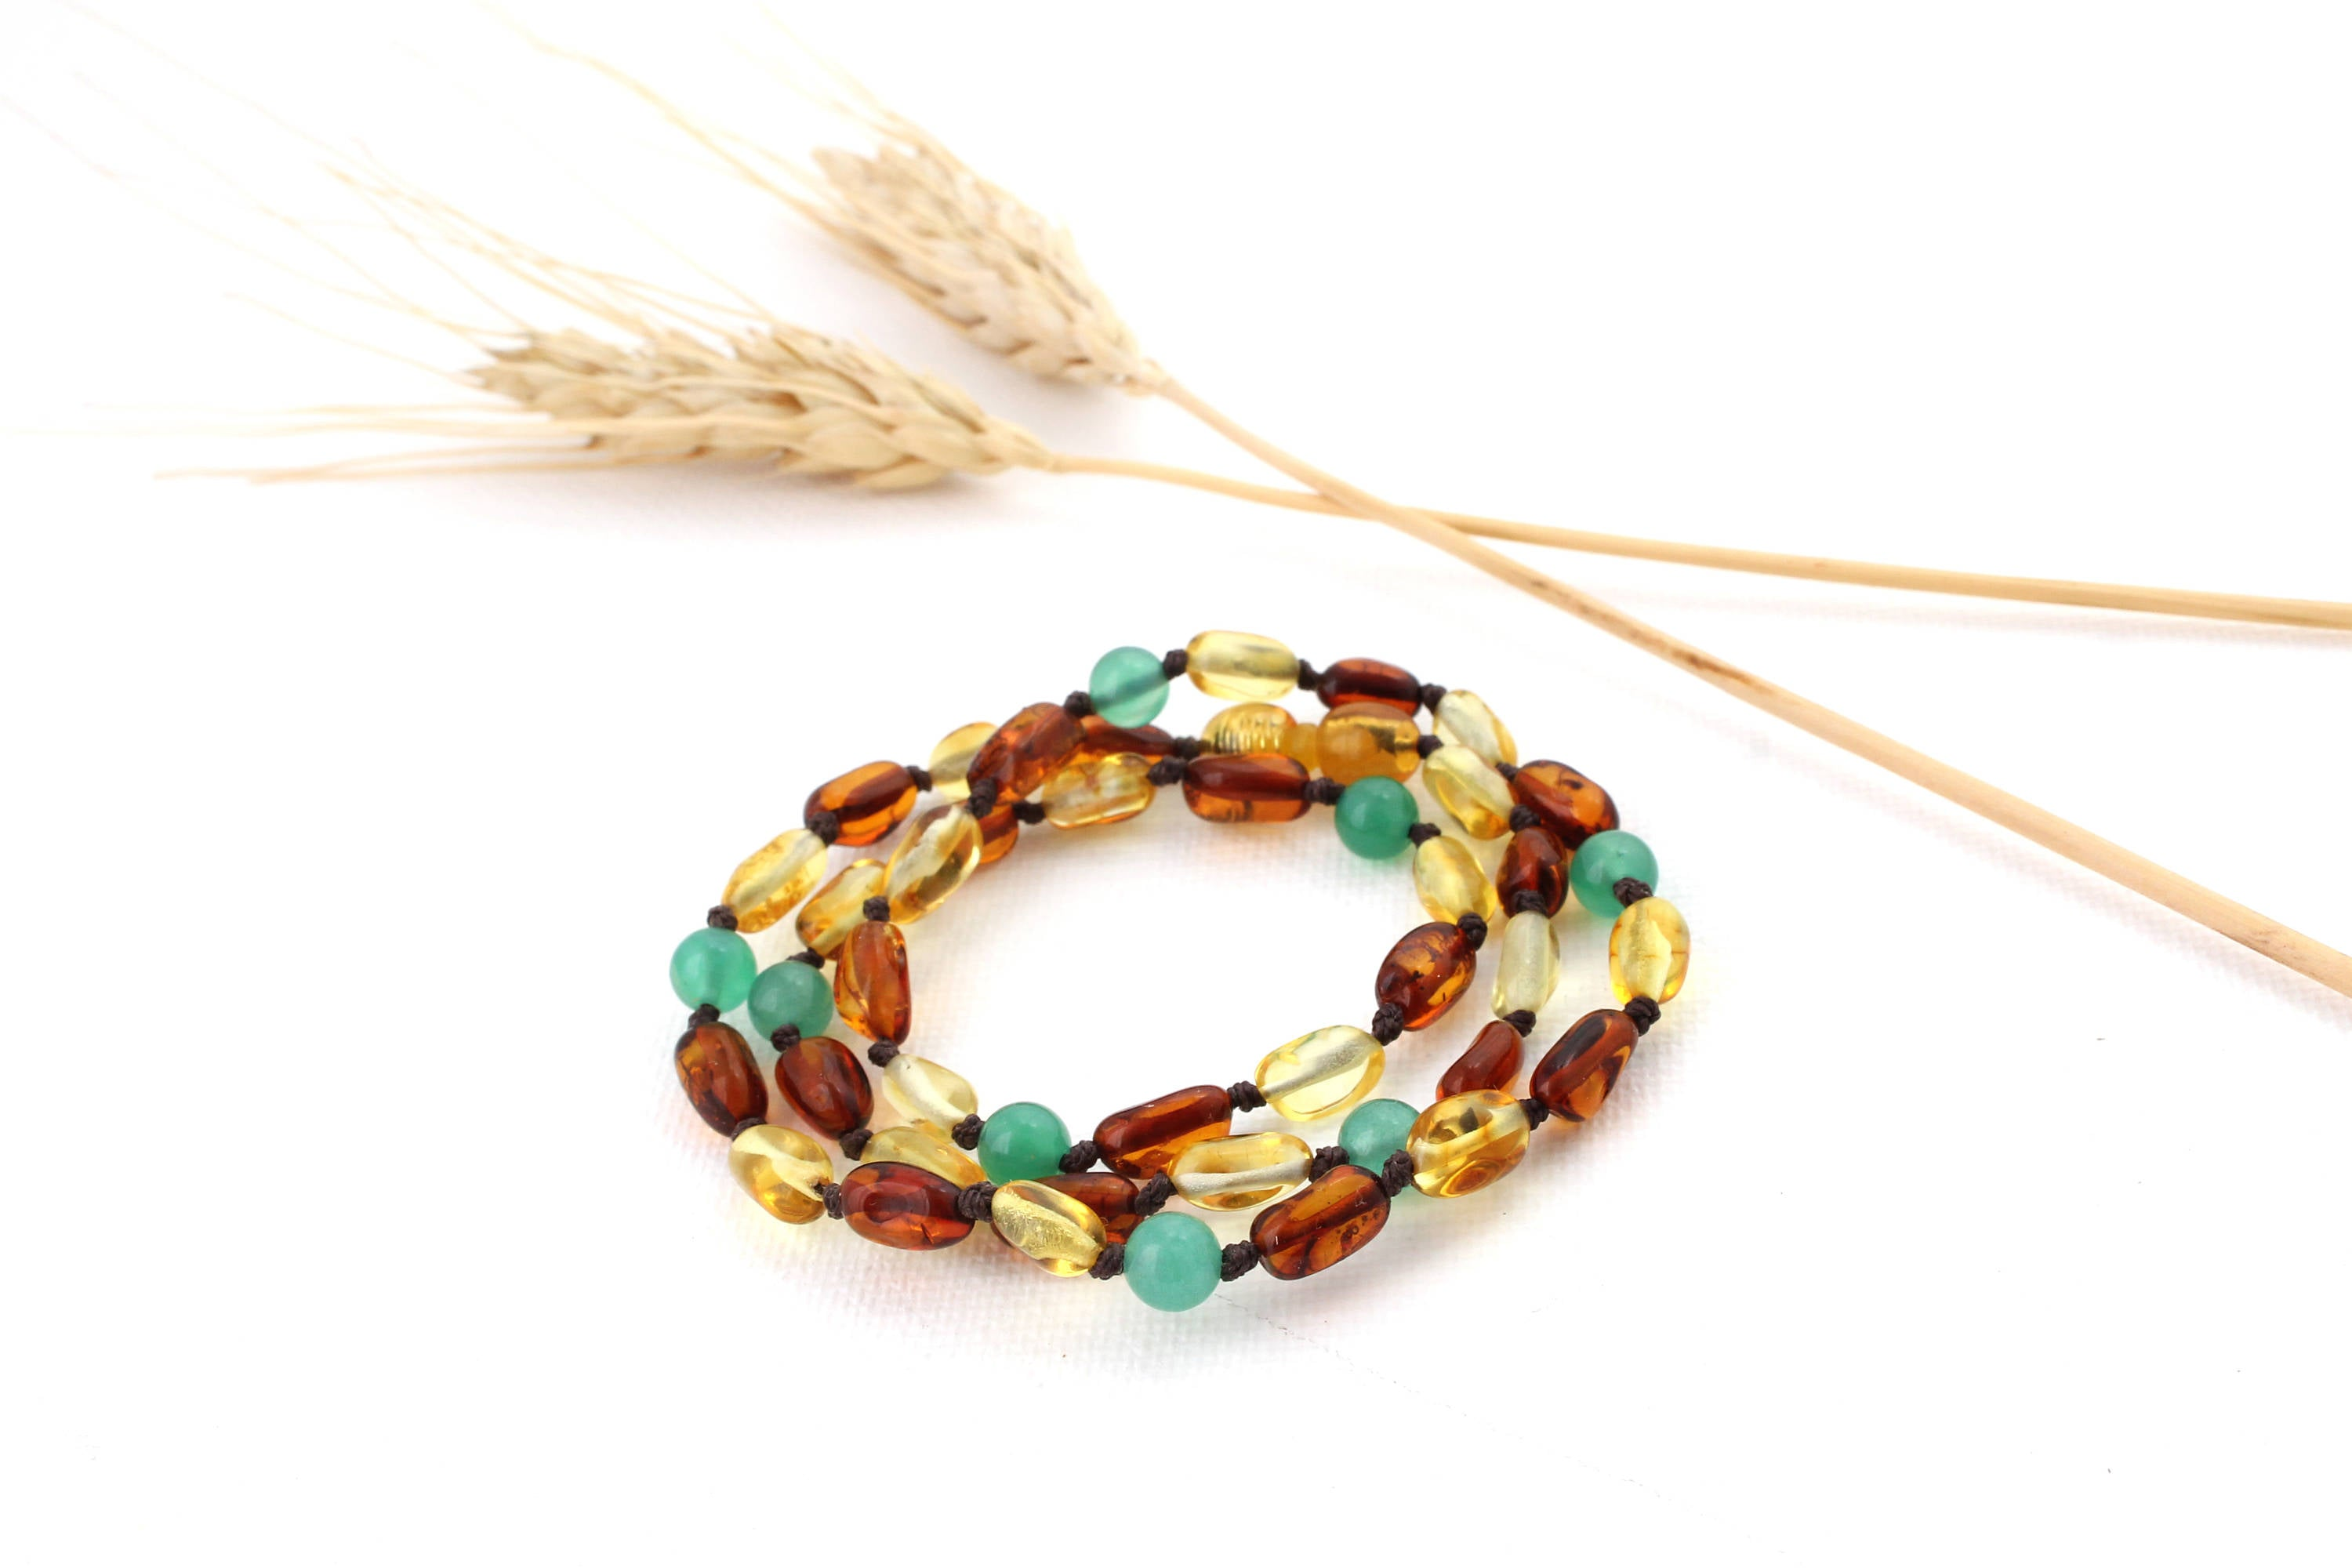 Mommy and Me Matching Amber Necklace Set | Cognac and Lemon Amber with Green Agate